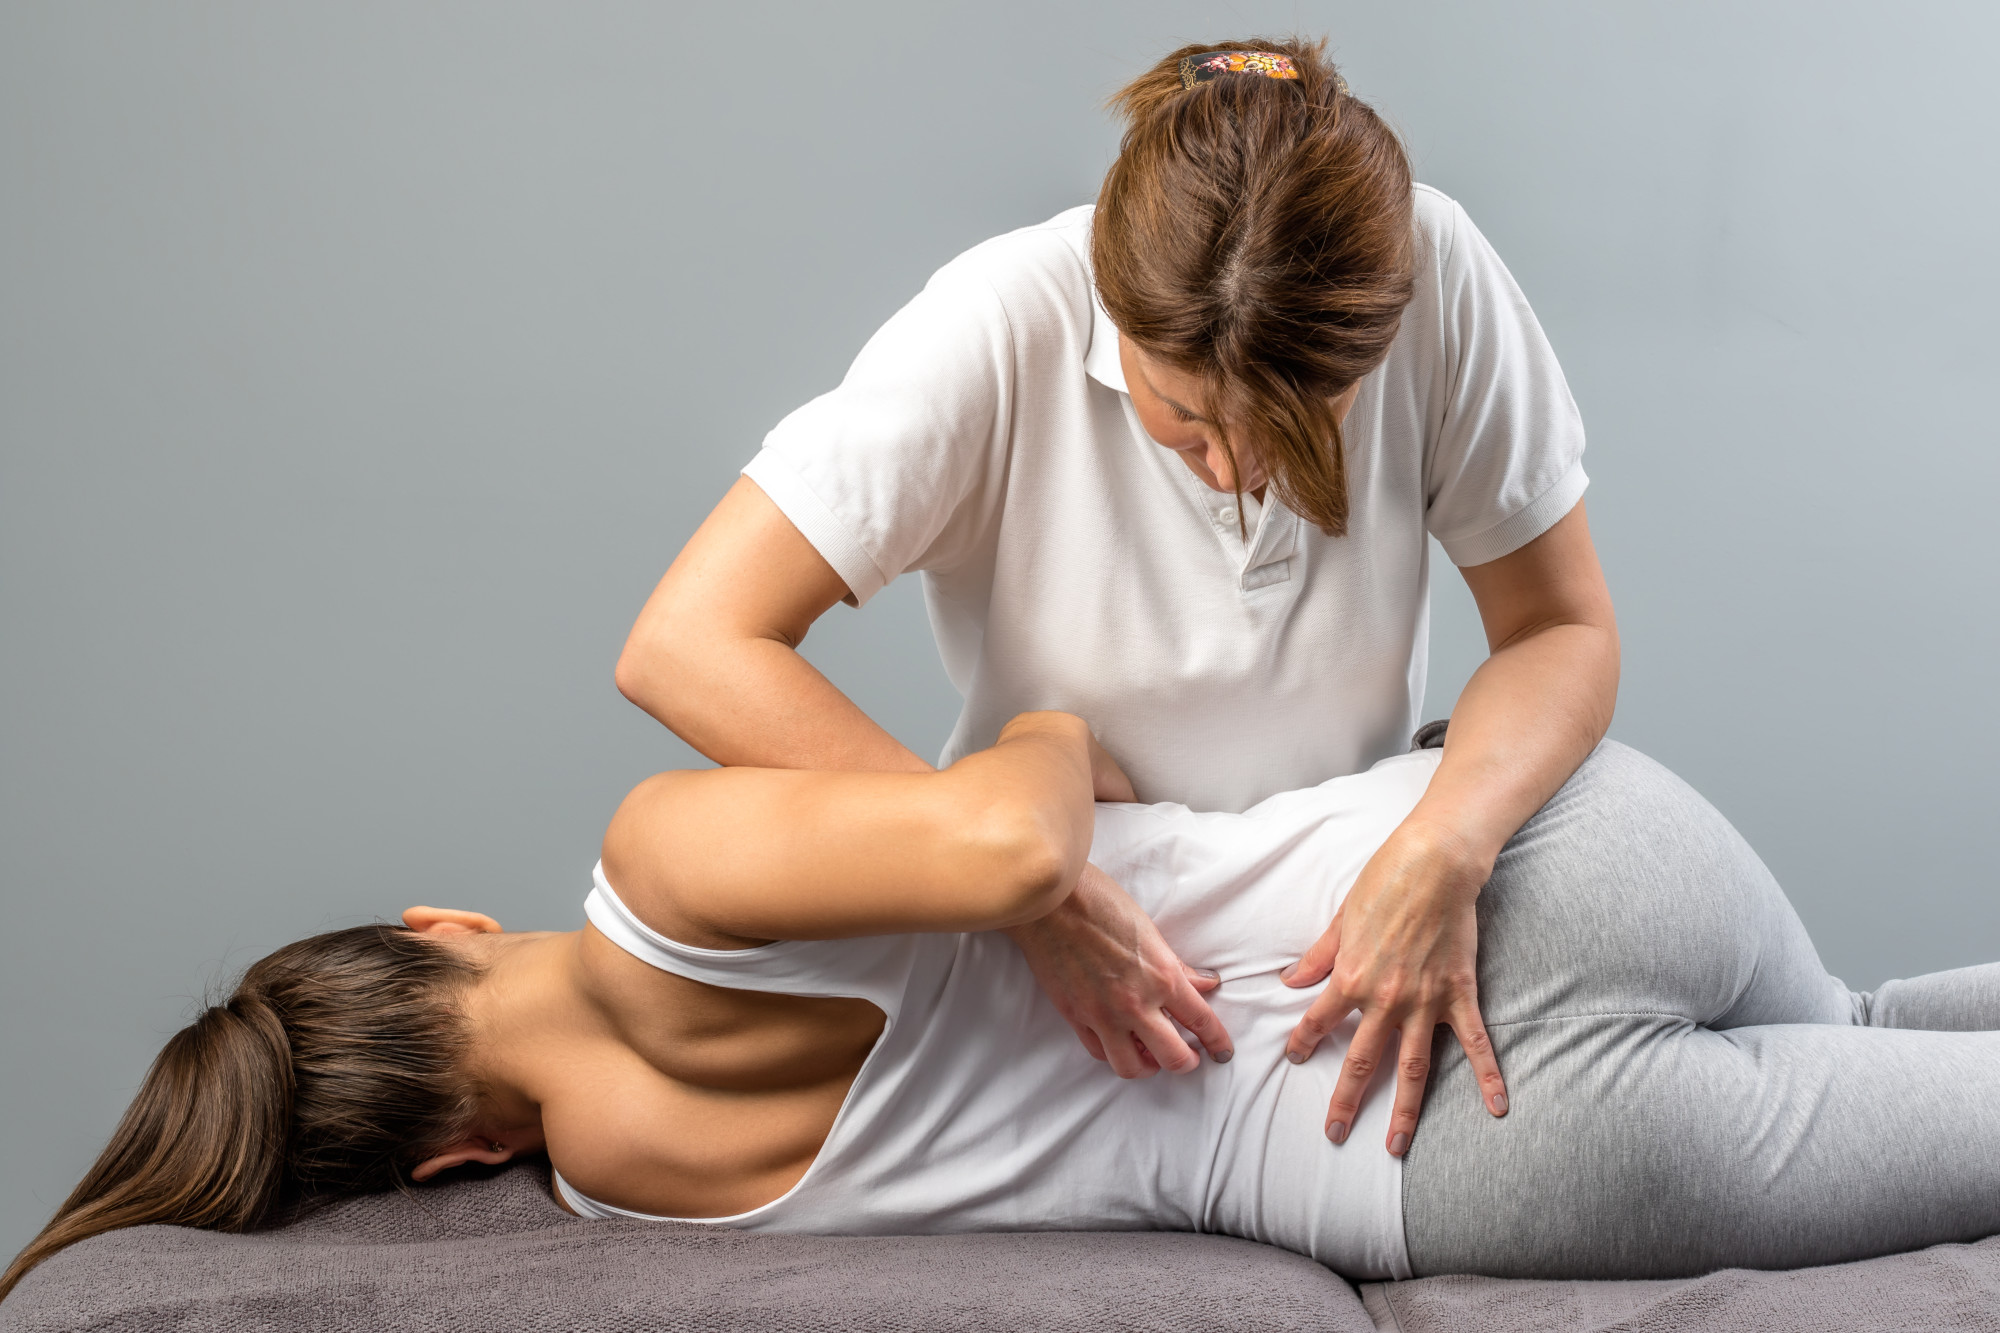 5 Tips to Consider When Choosing a Chiropractor